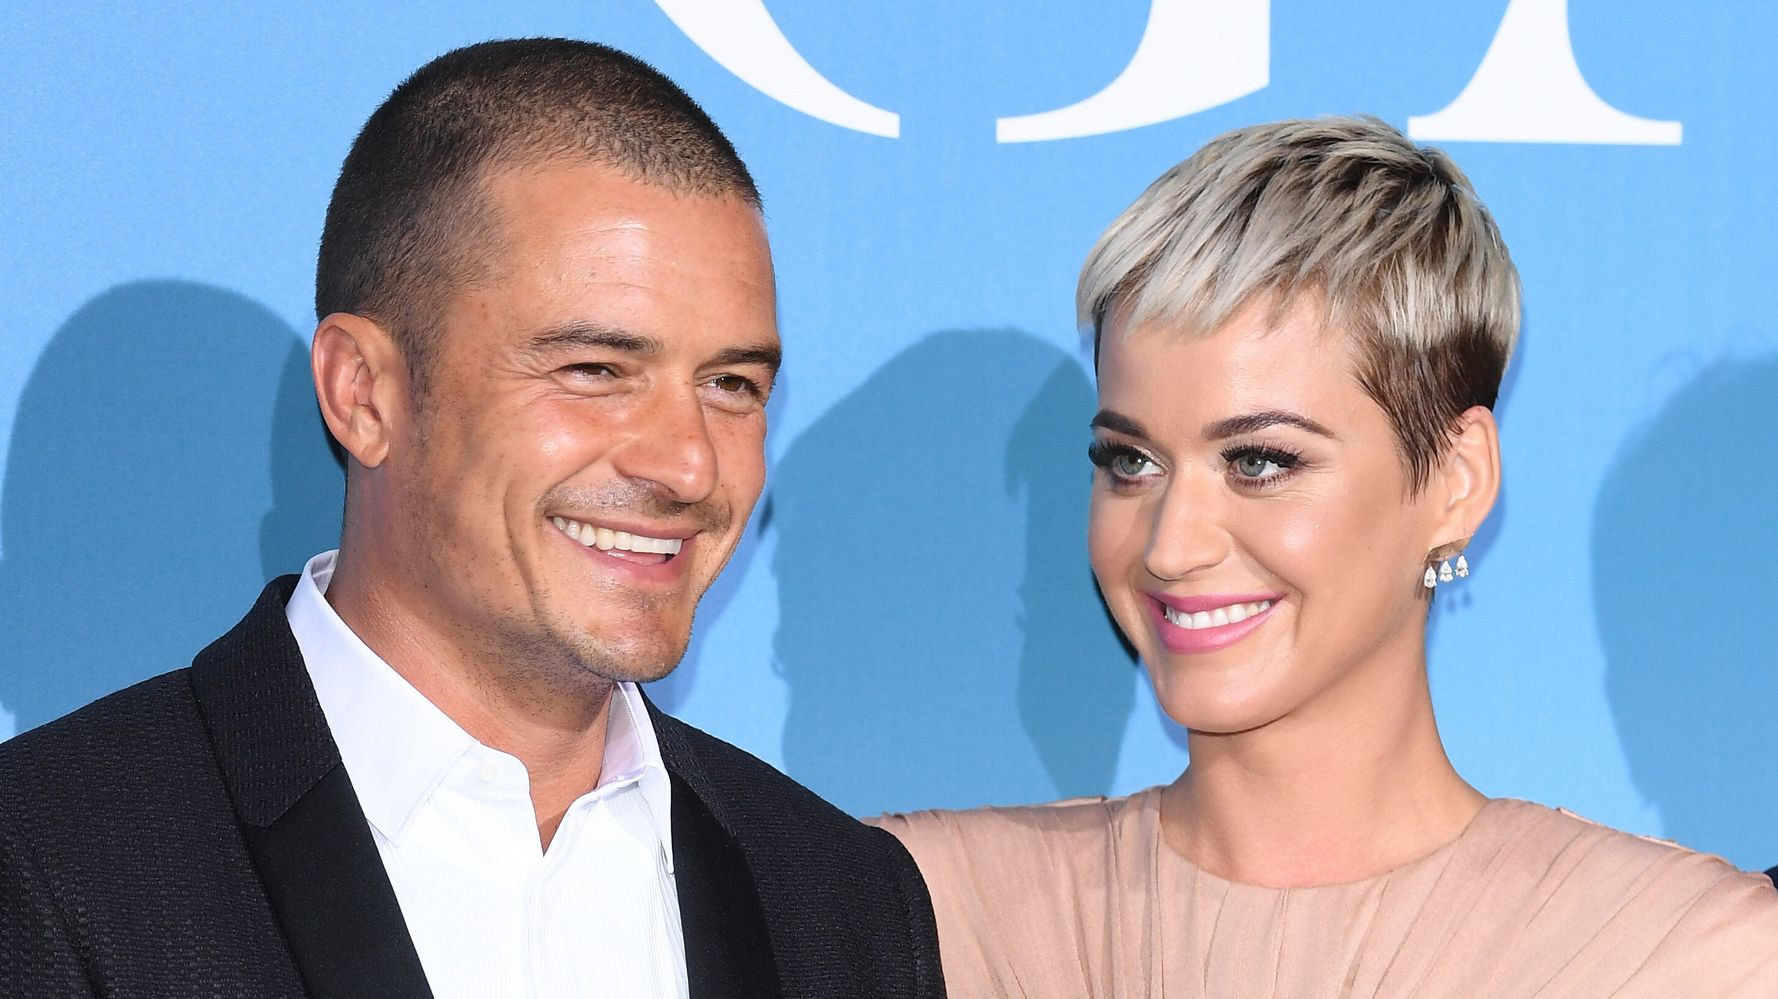 Orlando Bloom Says He Was Celibate, Didn't Masturbate For Months Before Katy Perry